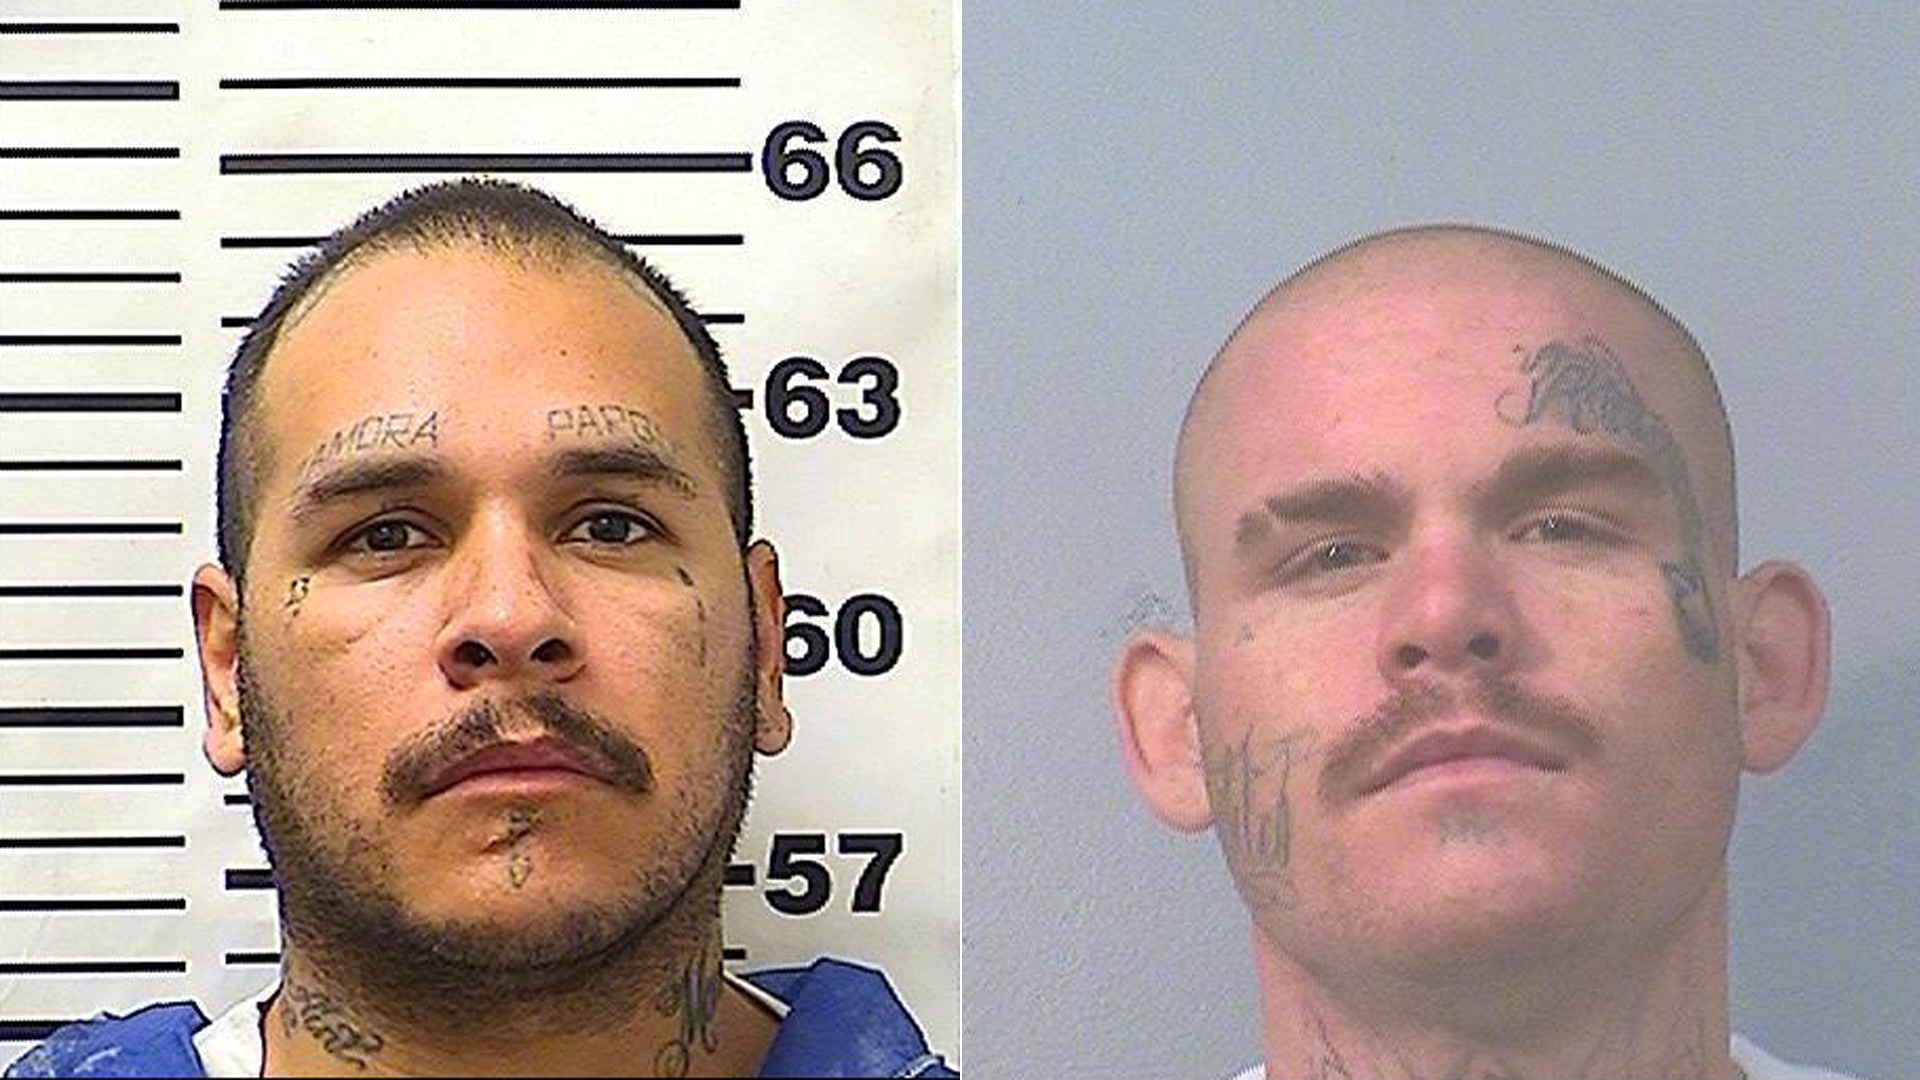 Anthony Rodriguez and Cody Taylor are shown in photos released by the California Department of Corrections and Rehabilitation on Dec. 12, 2019.